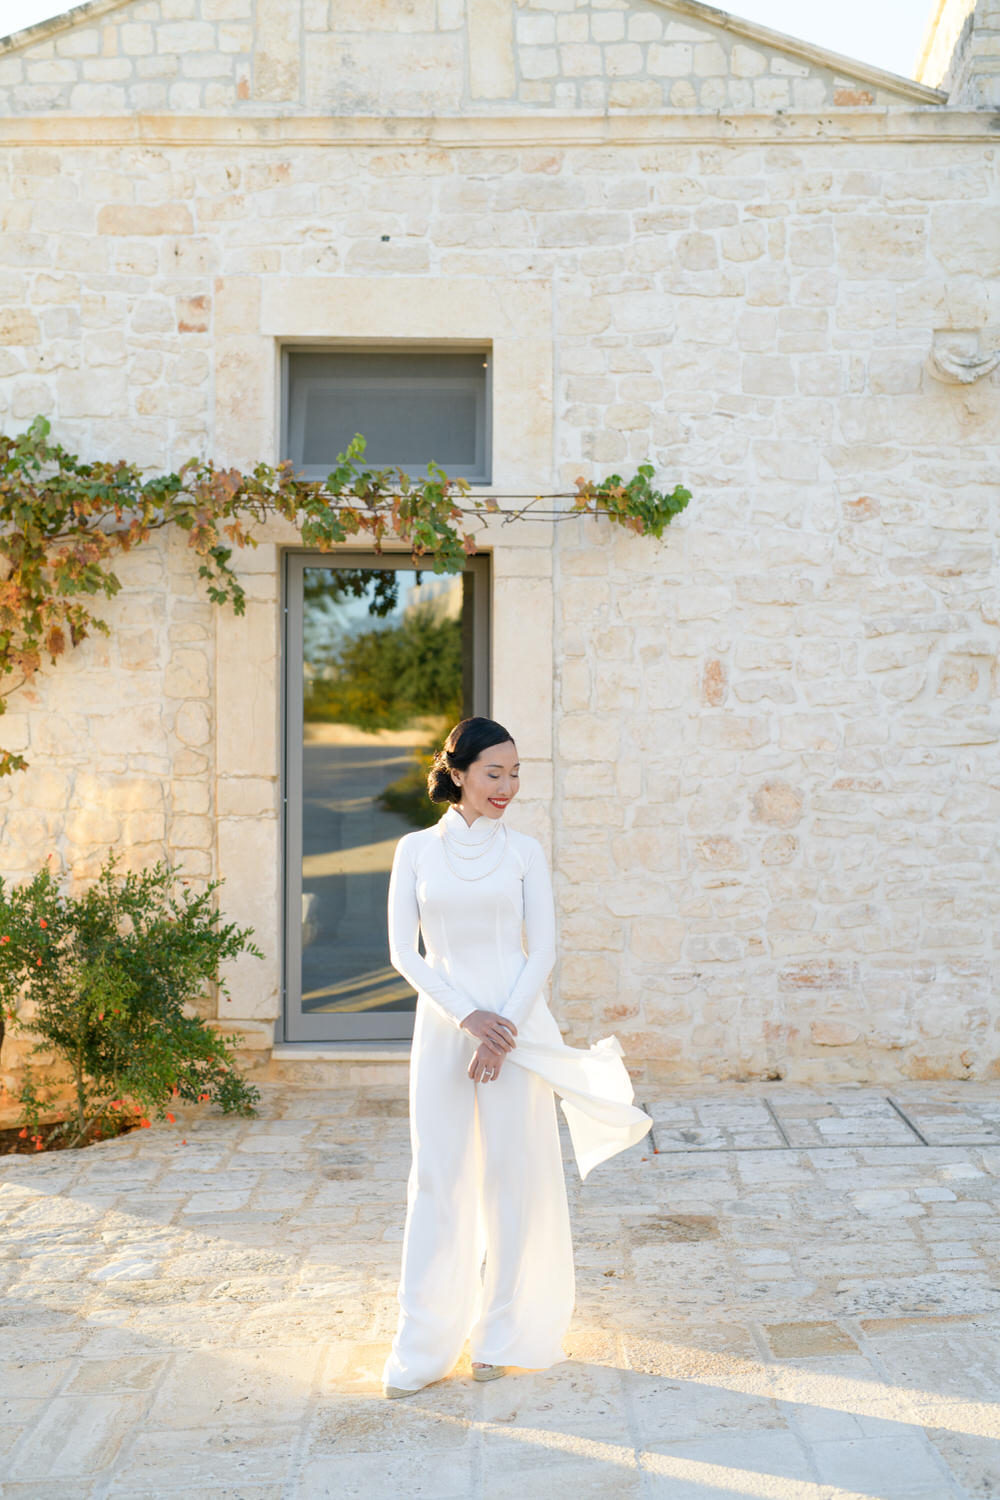 engagement-in-ostuni-©bottega53-2.jpg